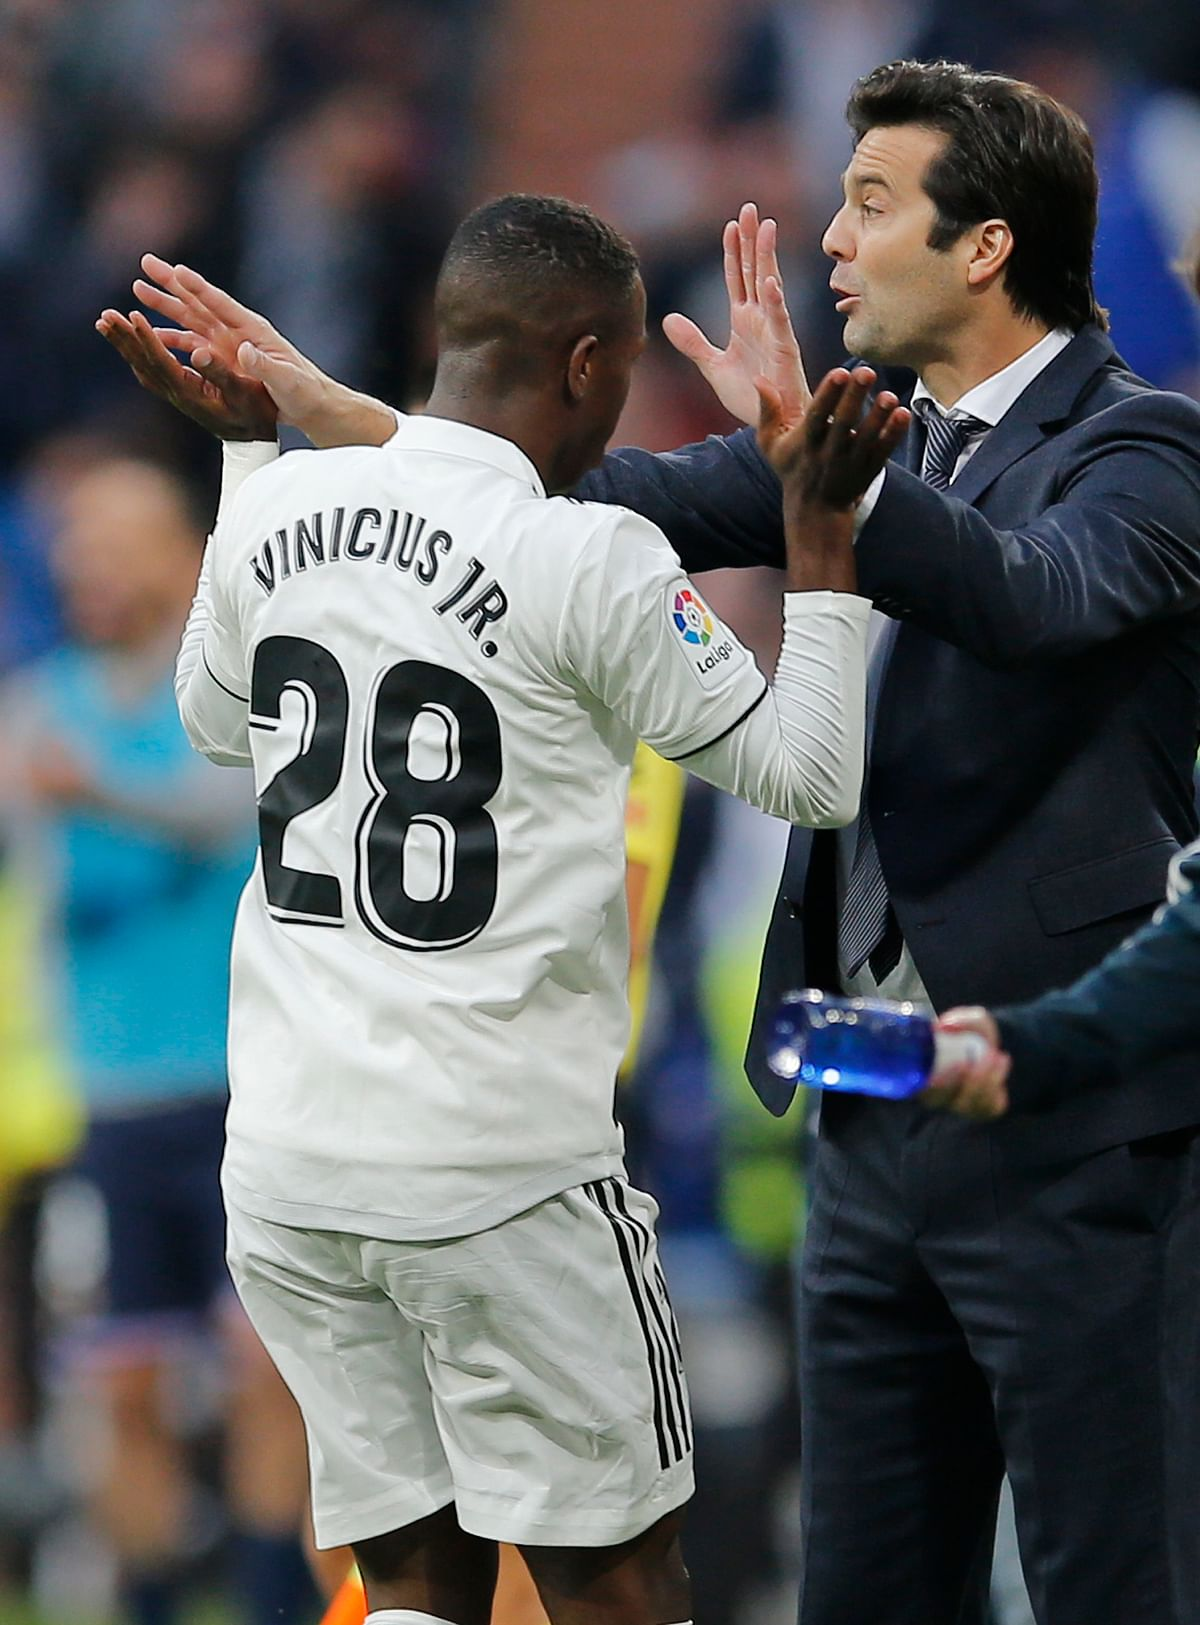 18-year-old Brazilian Vinicius Jr. has thrived with more game-time under Solari at Real